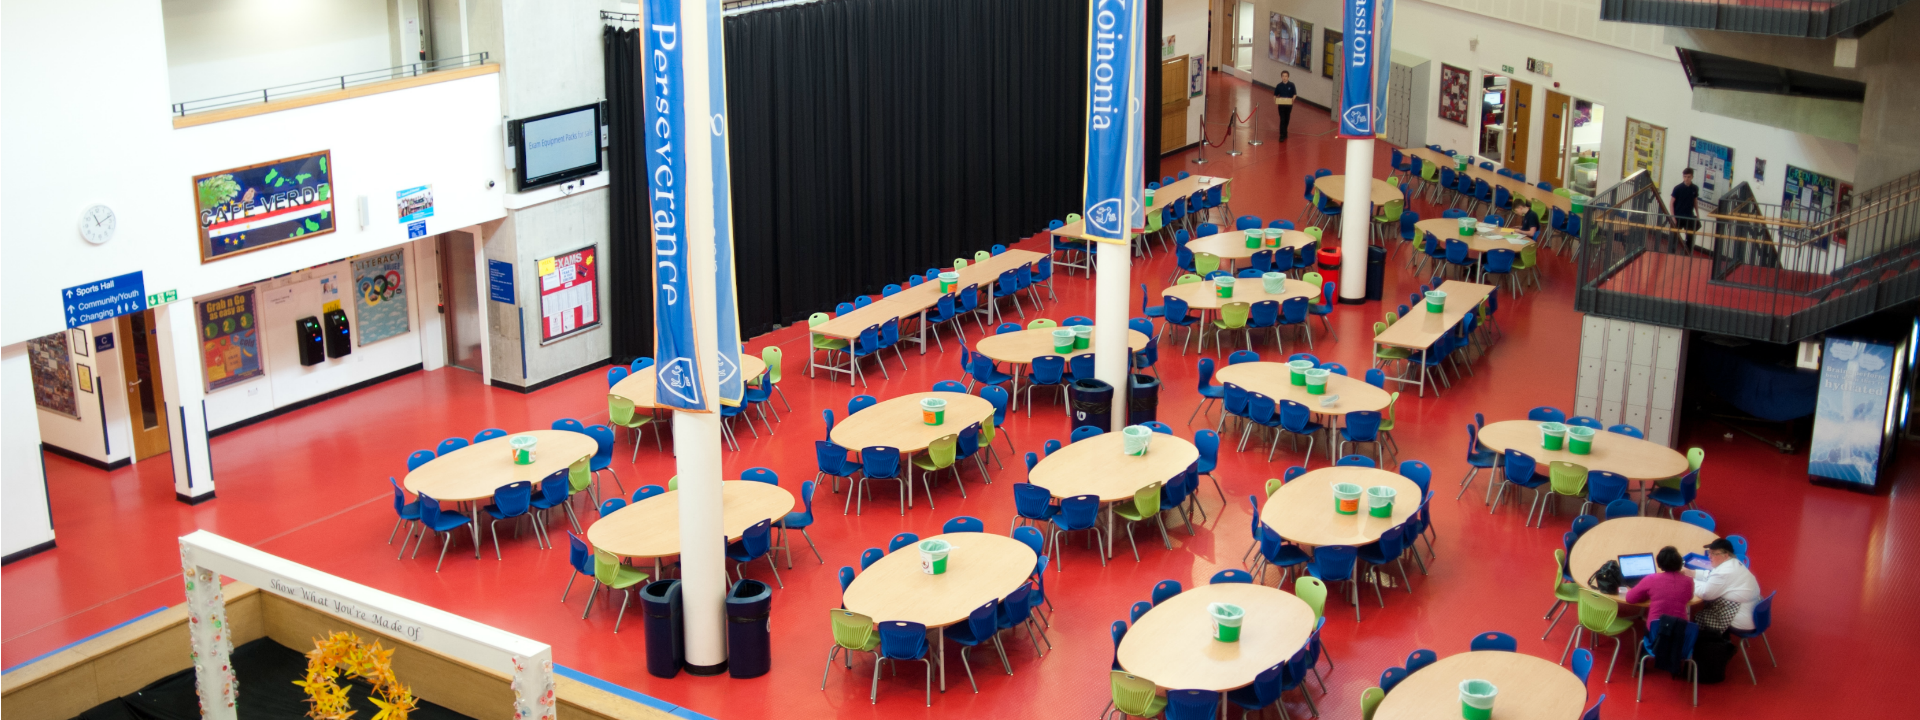 Excellent events facilities...